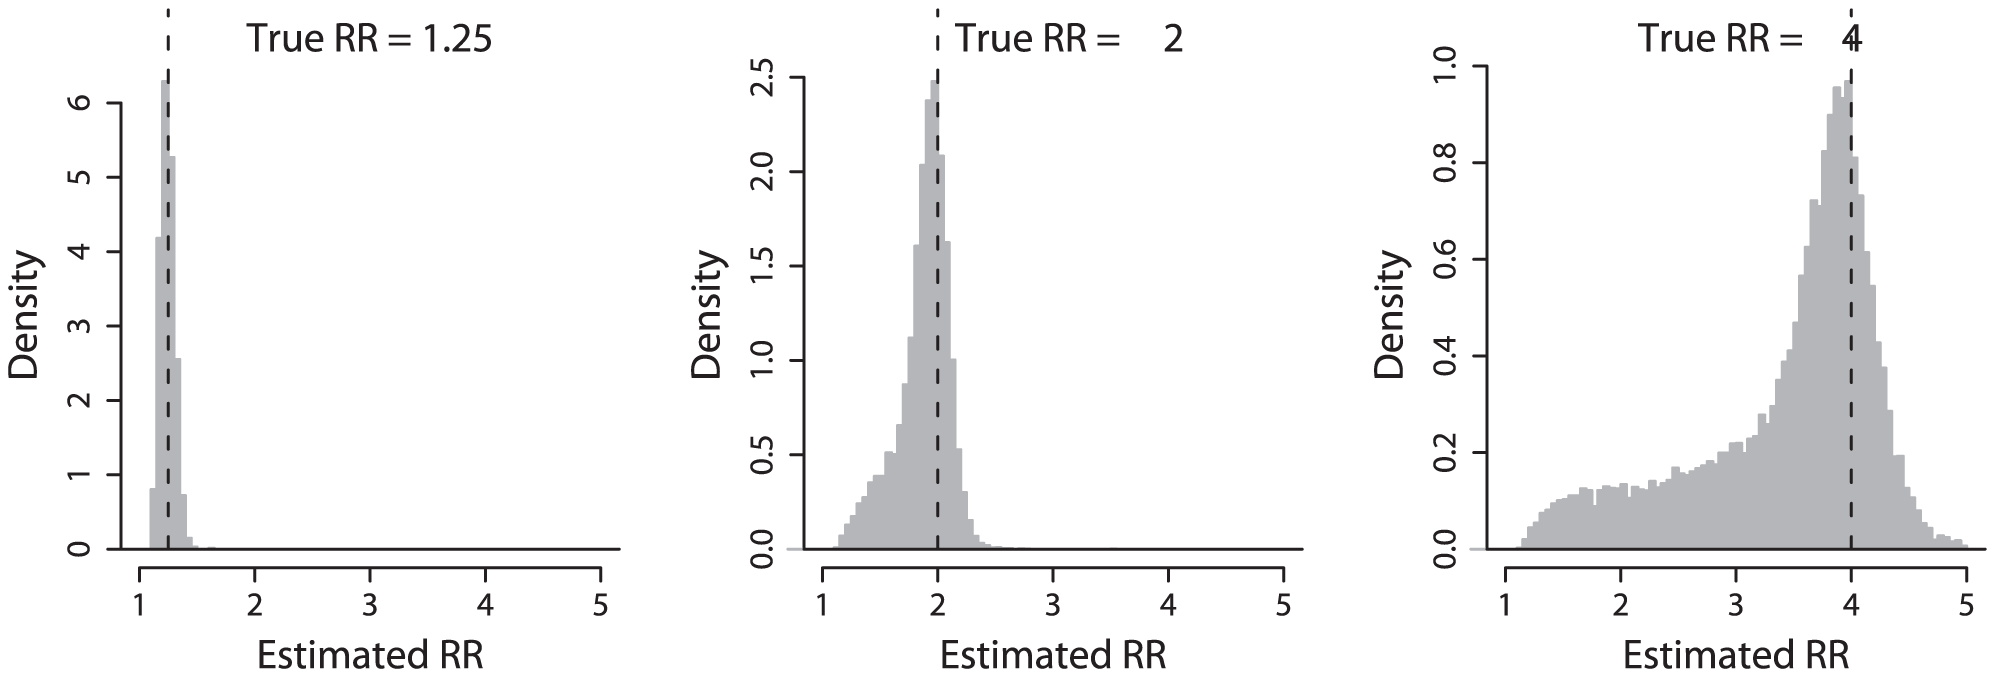 Distribution of estimated effect sizes.